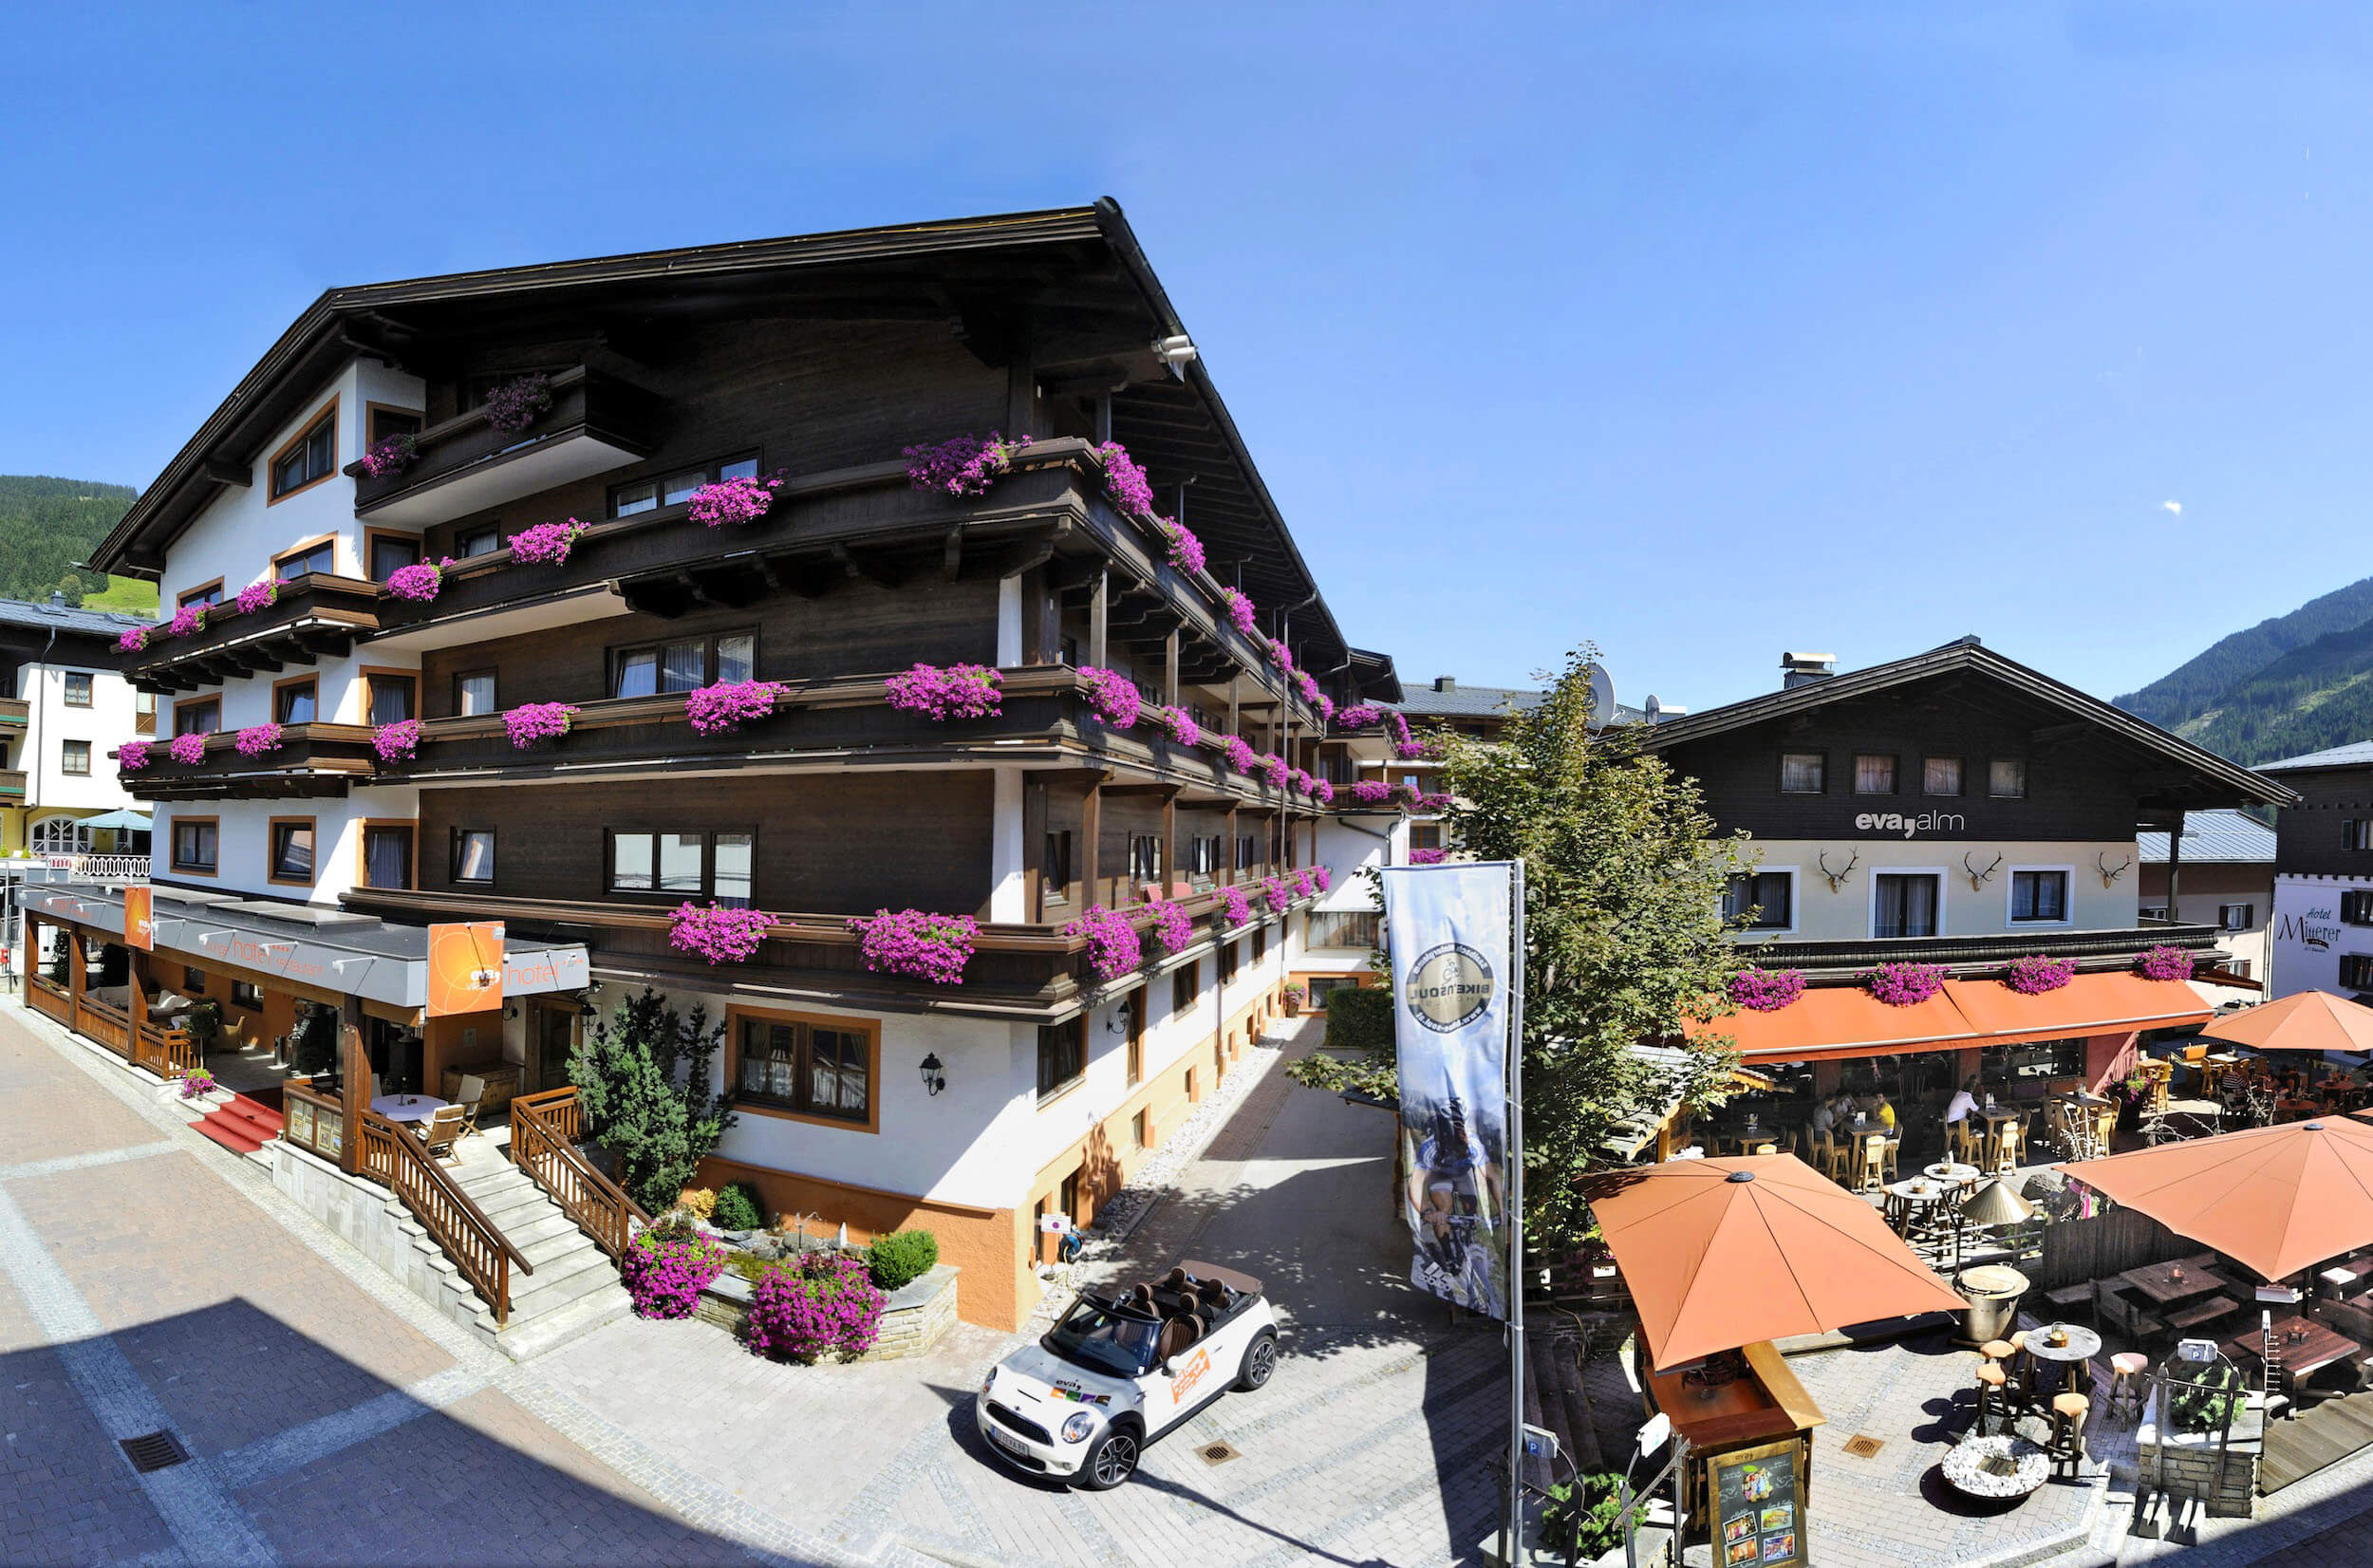 Hotel Eva Village in Saalbach